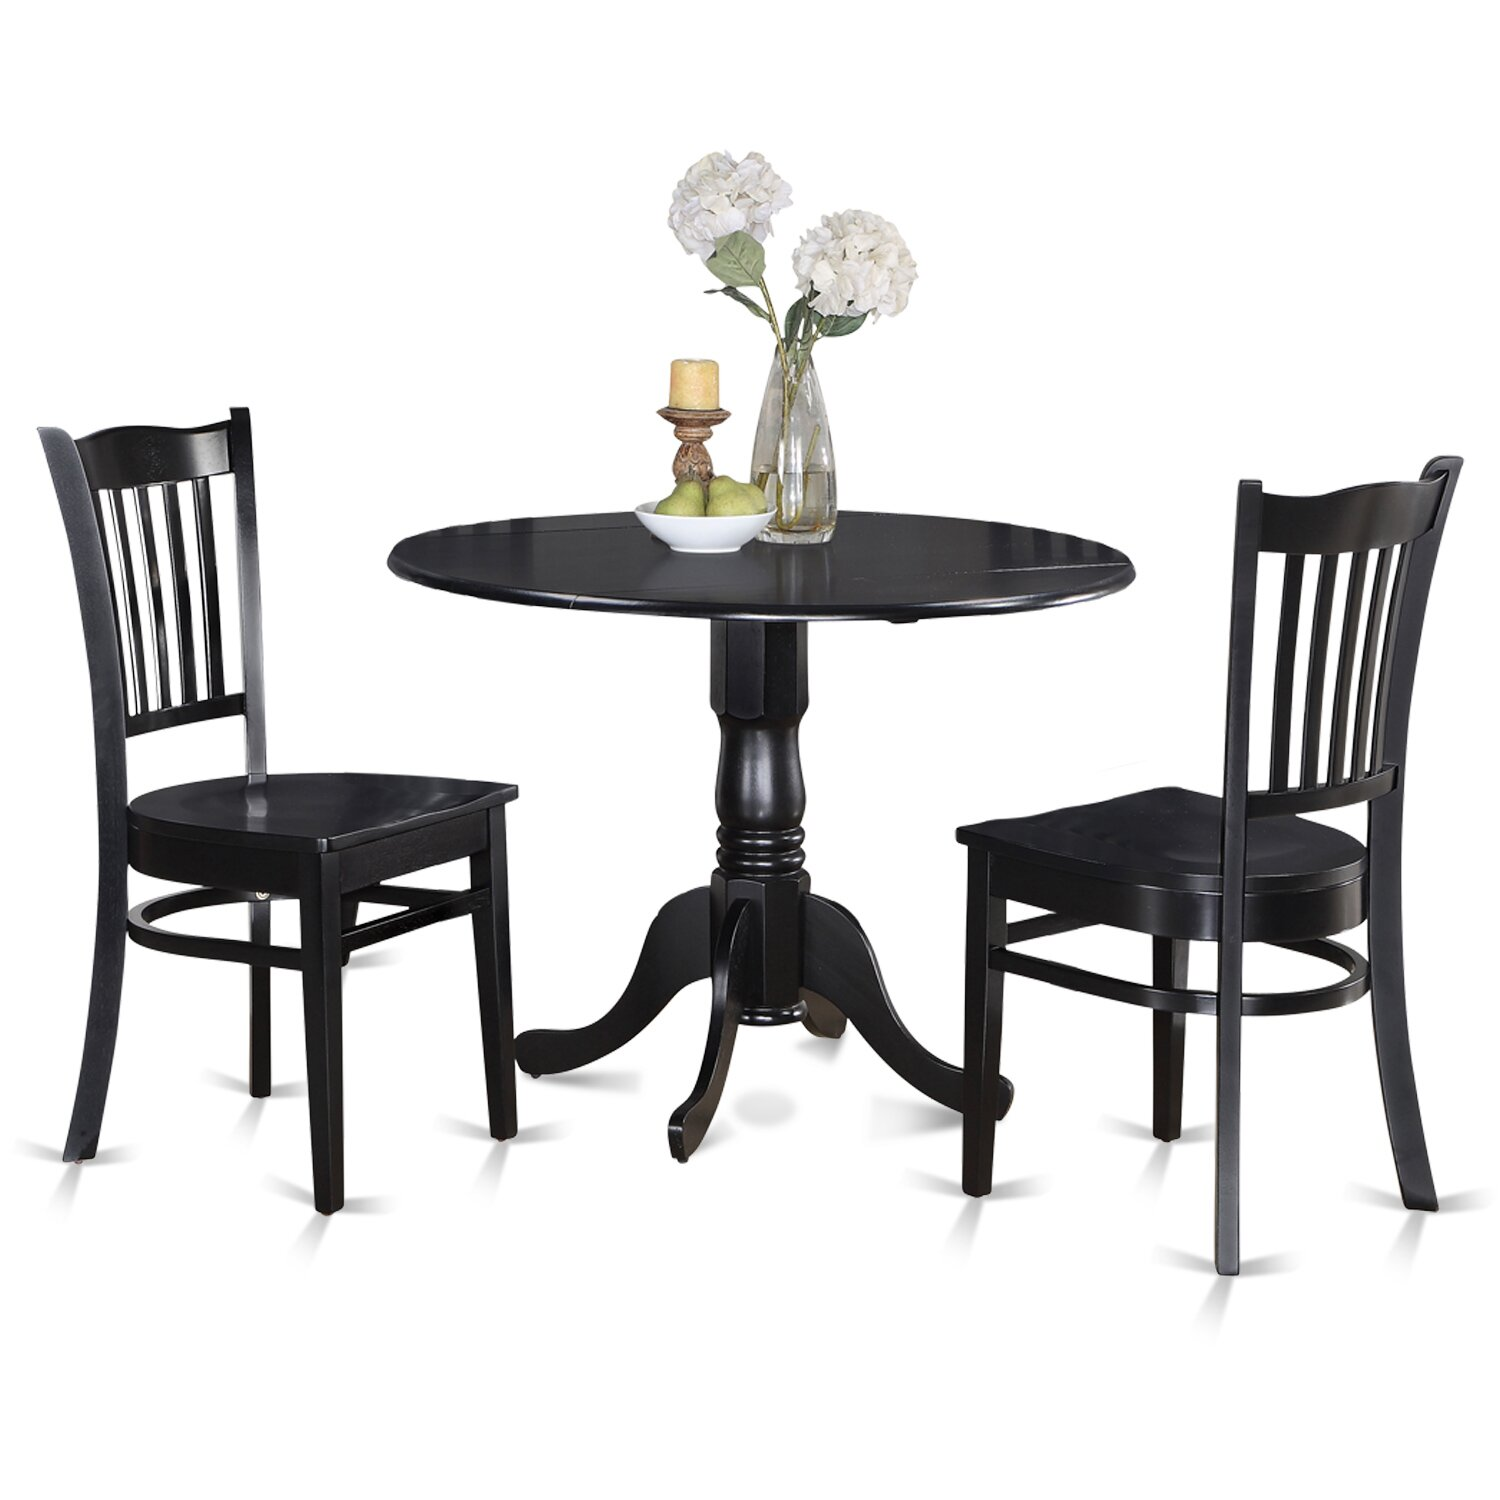 wooden importers dublin 3 piece dining set reviews wayfair. Black Bedroom Furniture Sets. Home Design Ideas